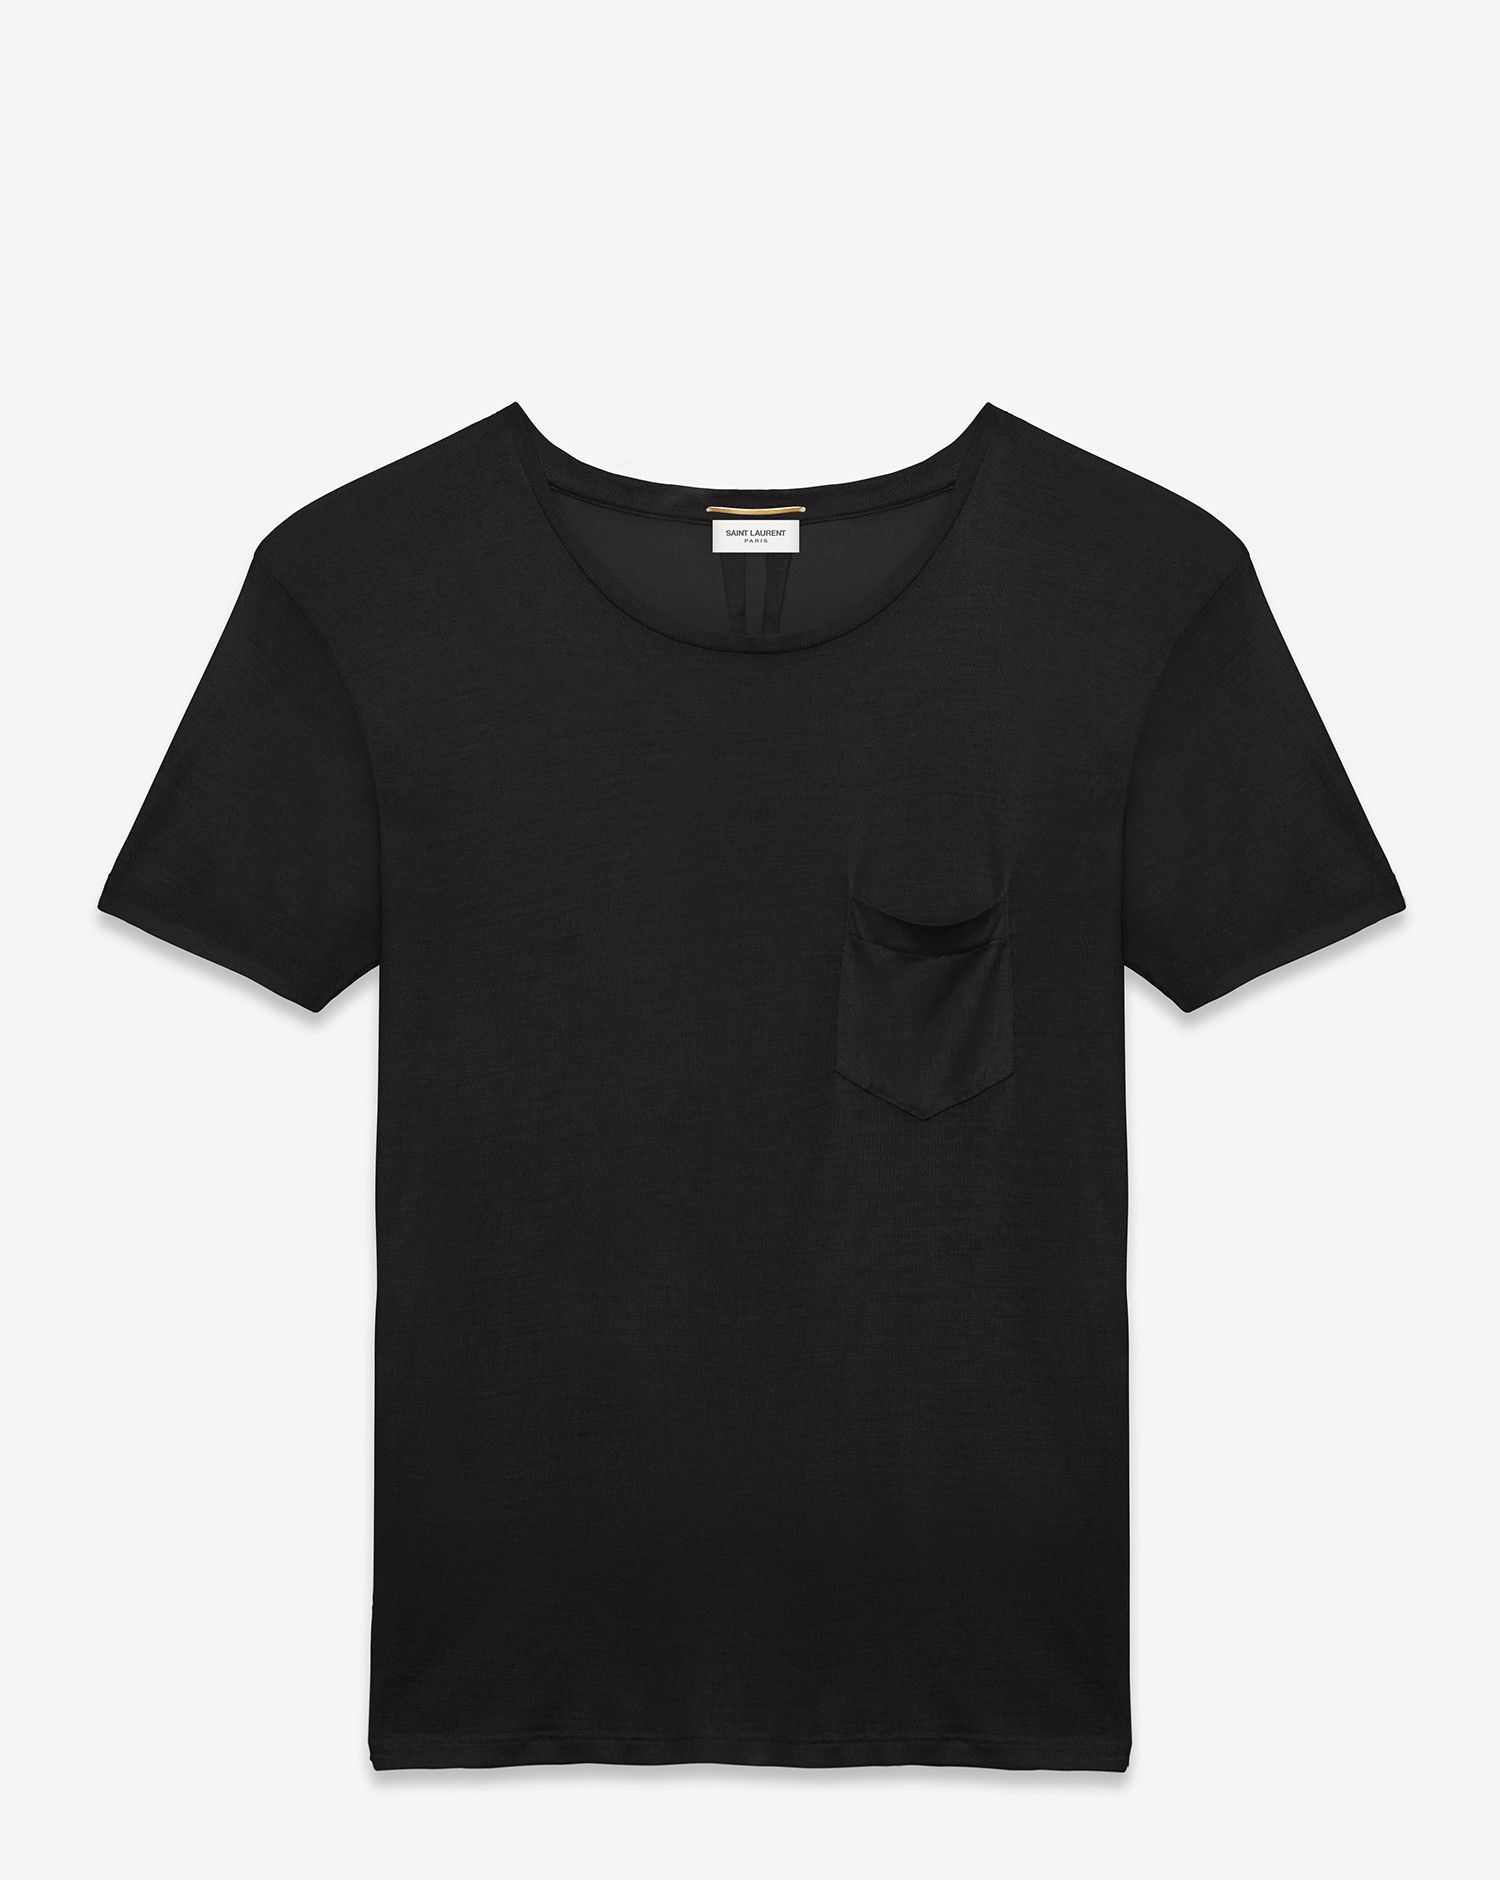 942b151562 Saint Laurent classic short sleeve pocket t shirt in black washed silk  jersey